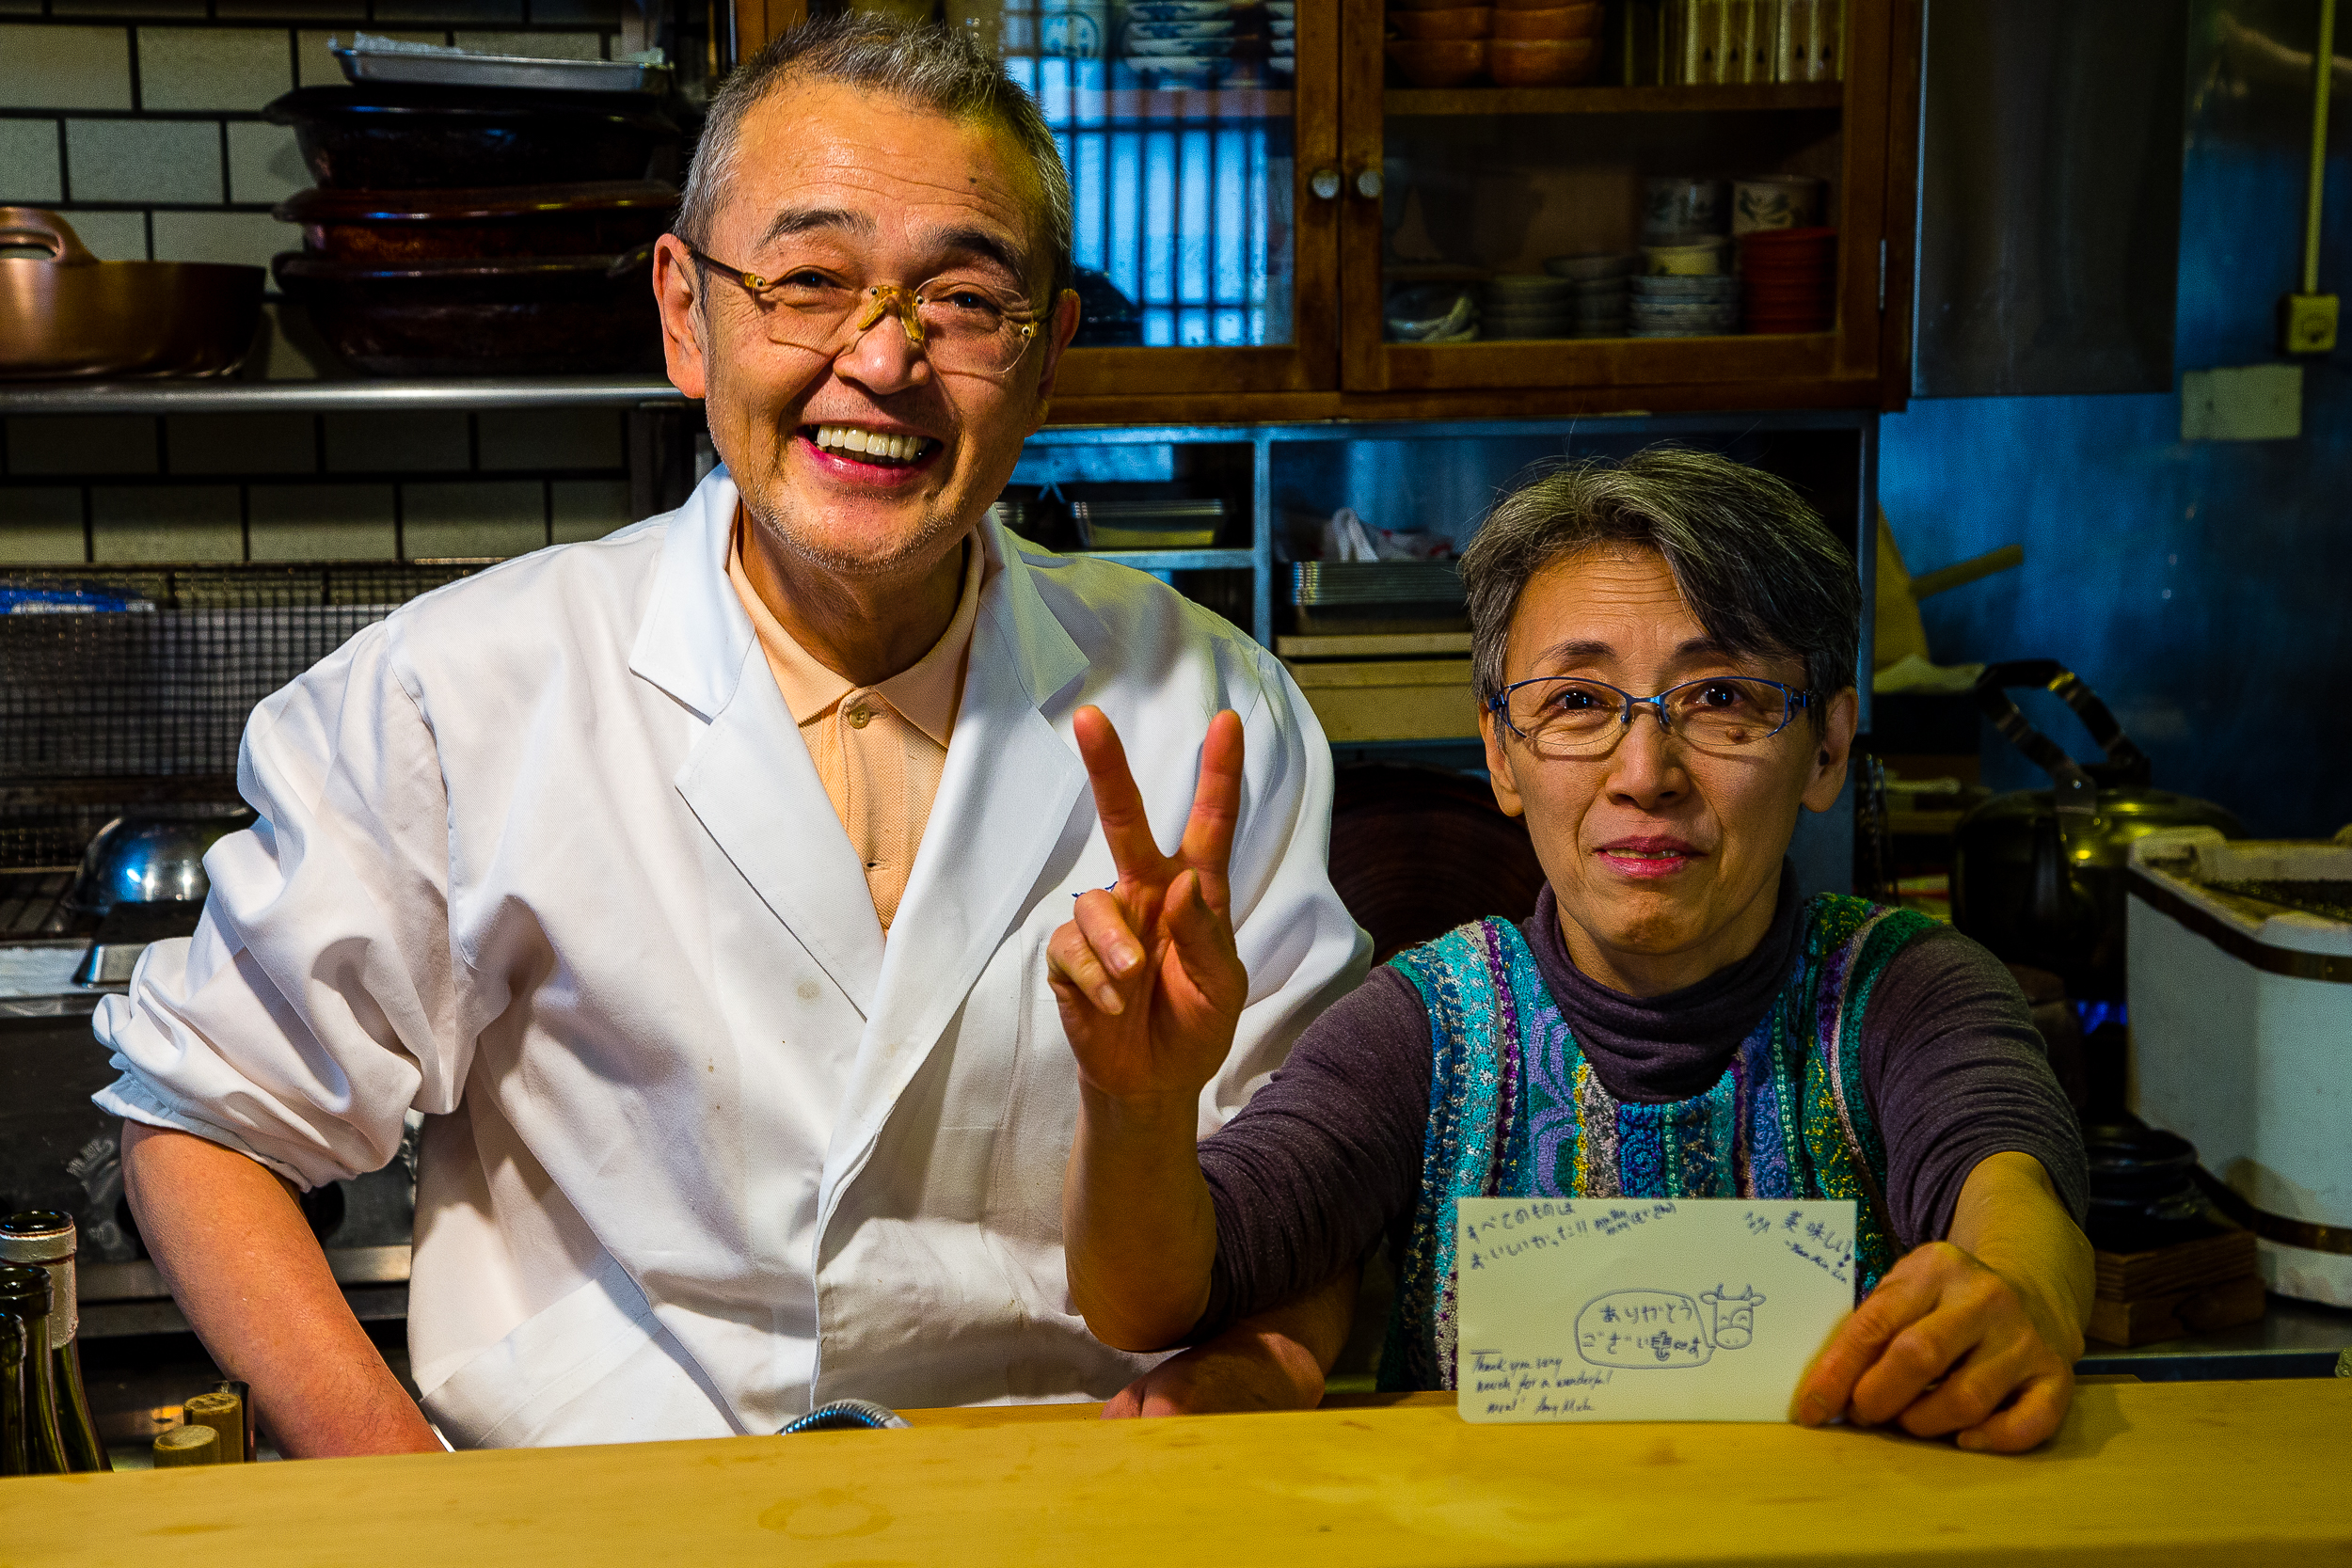 """The owners. Aren't they cute? They also single-handedly run the kitchen. For whatever reason, people love my cow drawings (I can't draw anything else), so I drew them a cow saying, """"ありがとうございもす""""."""